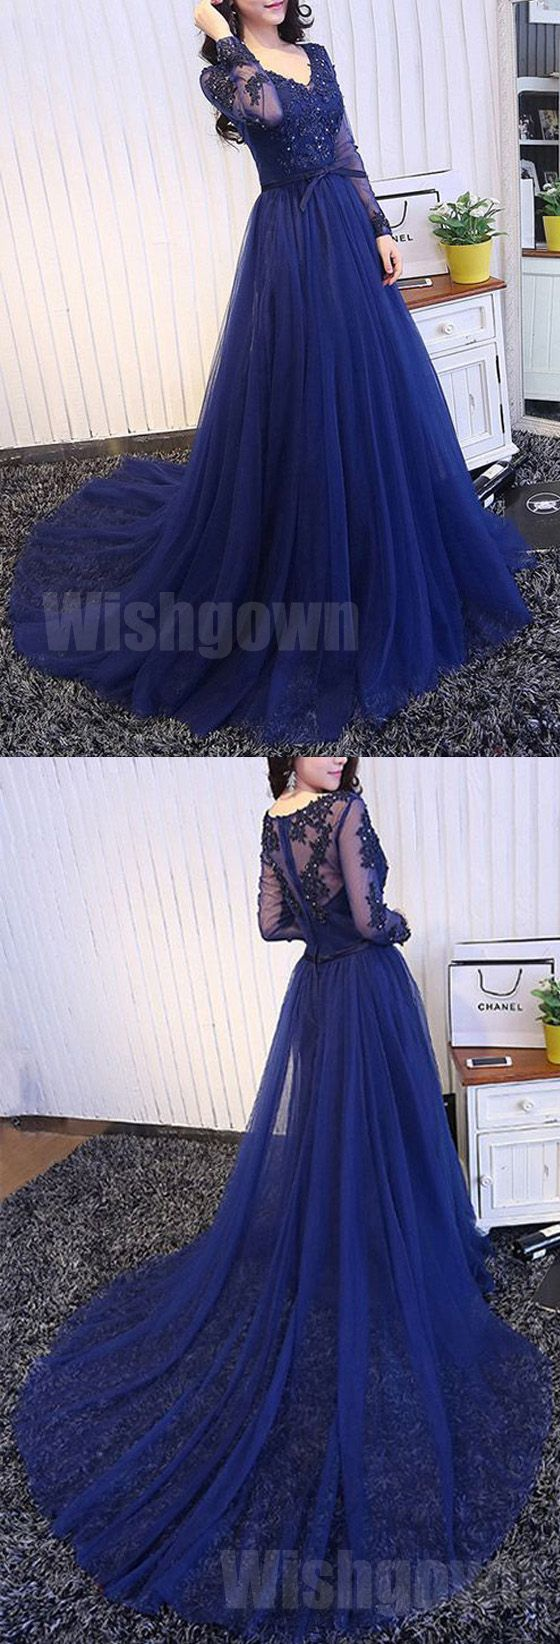 Royal Blue Long Sleeves Tulle Elegant Cheap Long Prom Dresses, WG1050 #promdress #promdresses #longpromdress